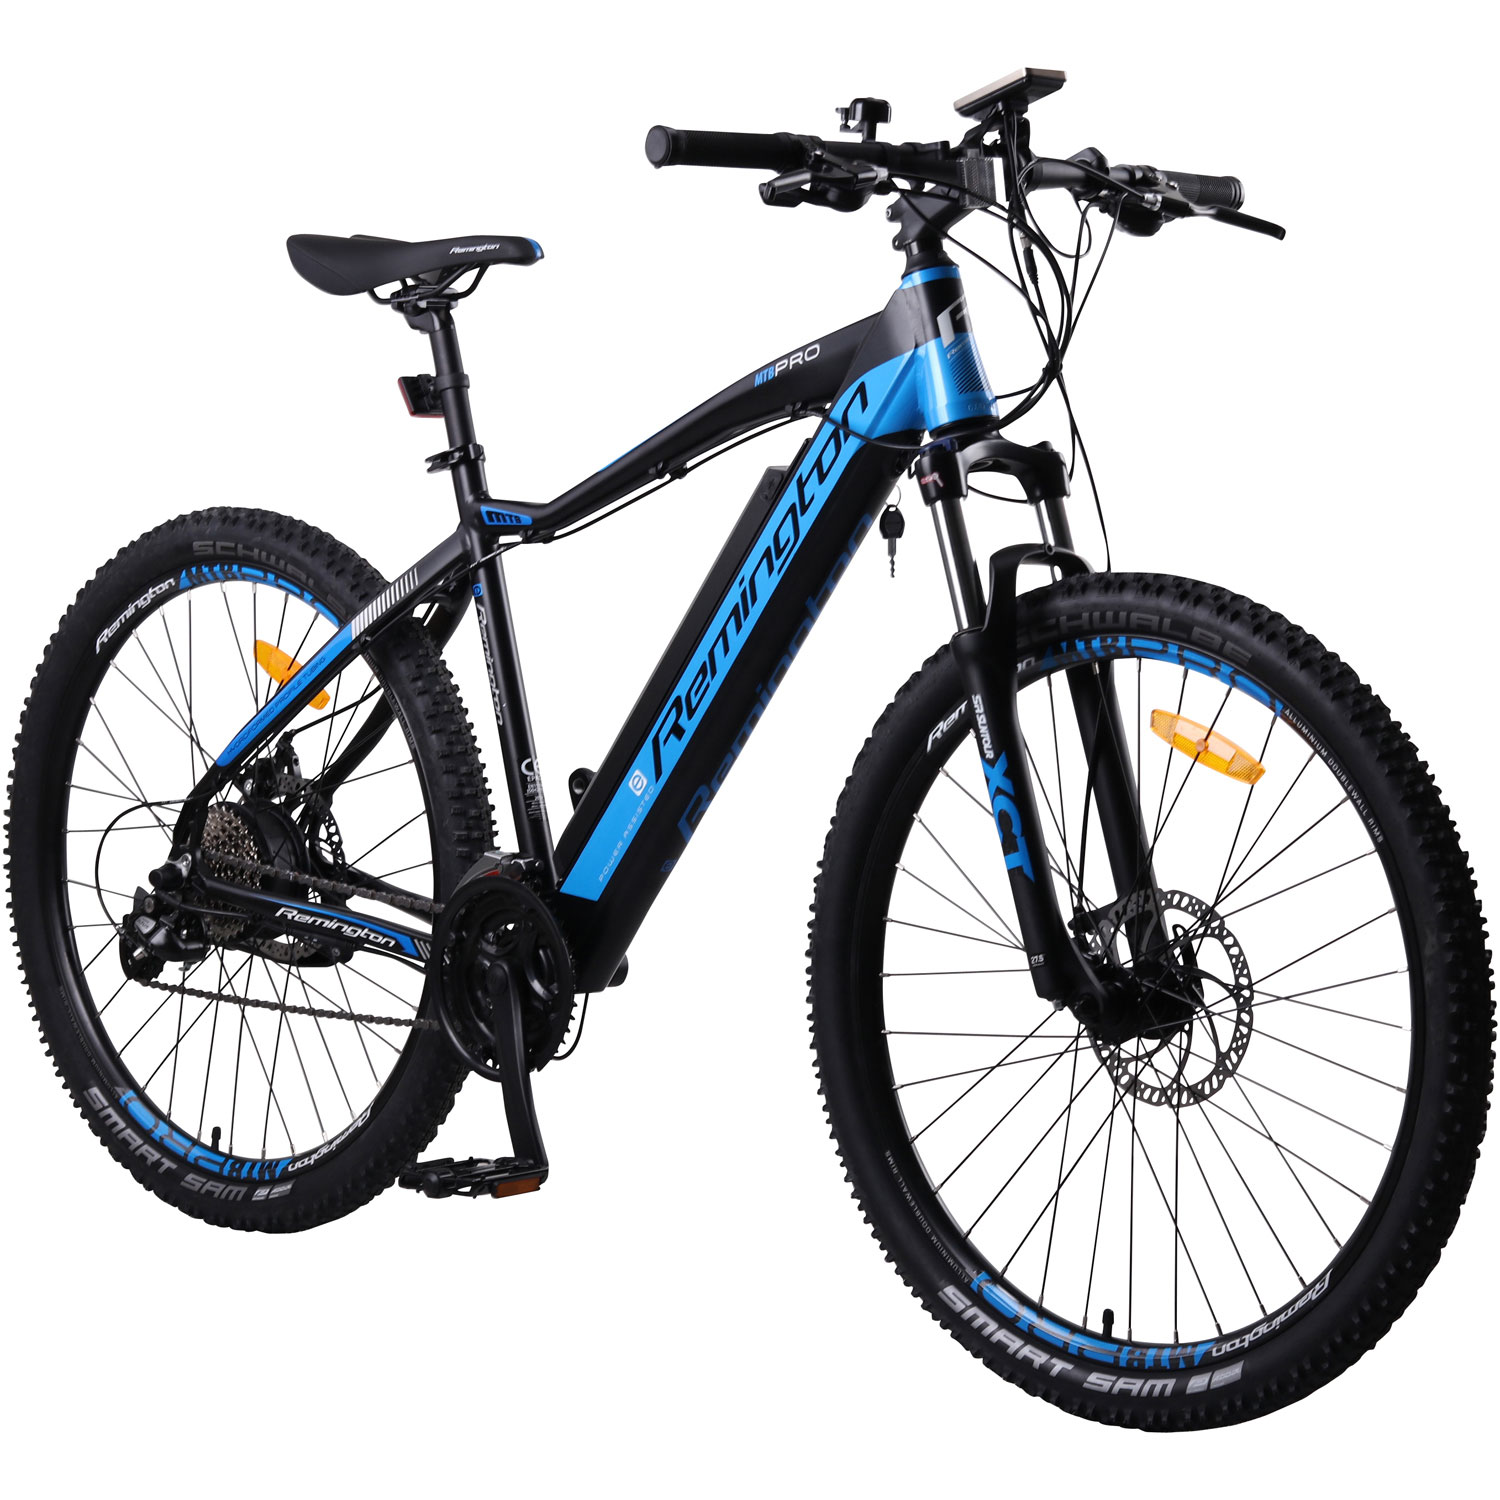 e mountainbike 650b 27 5 zoll remington mtb pro e bike pedelec hardtail fahrrad ebay